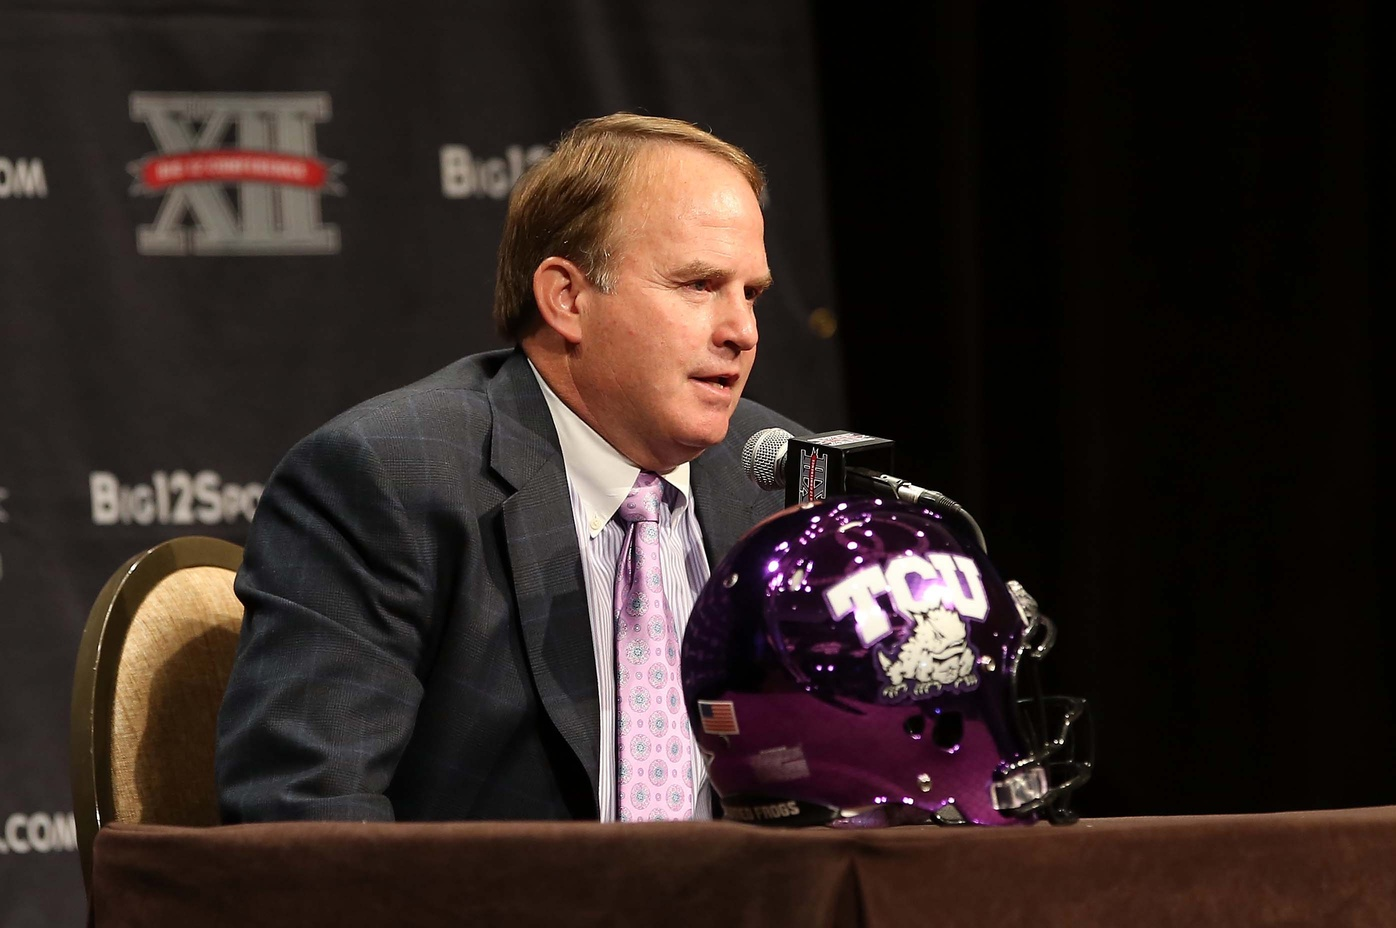 The TCU helmet is one of the best in college football, matching the team wearing it. (Image courtesy: USA Today Sports)